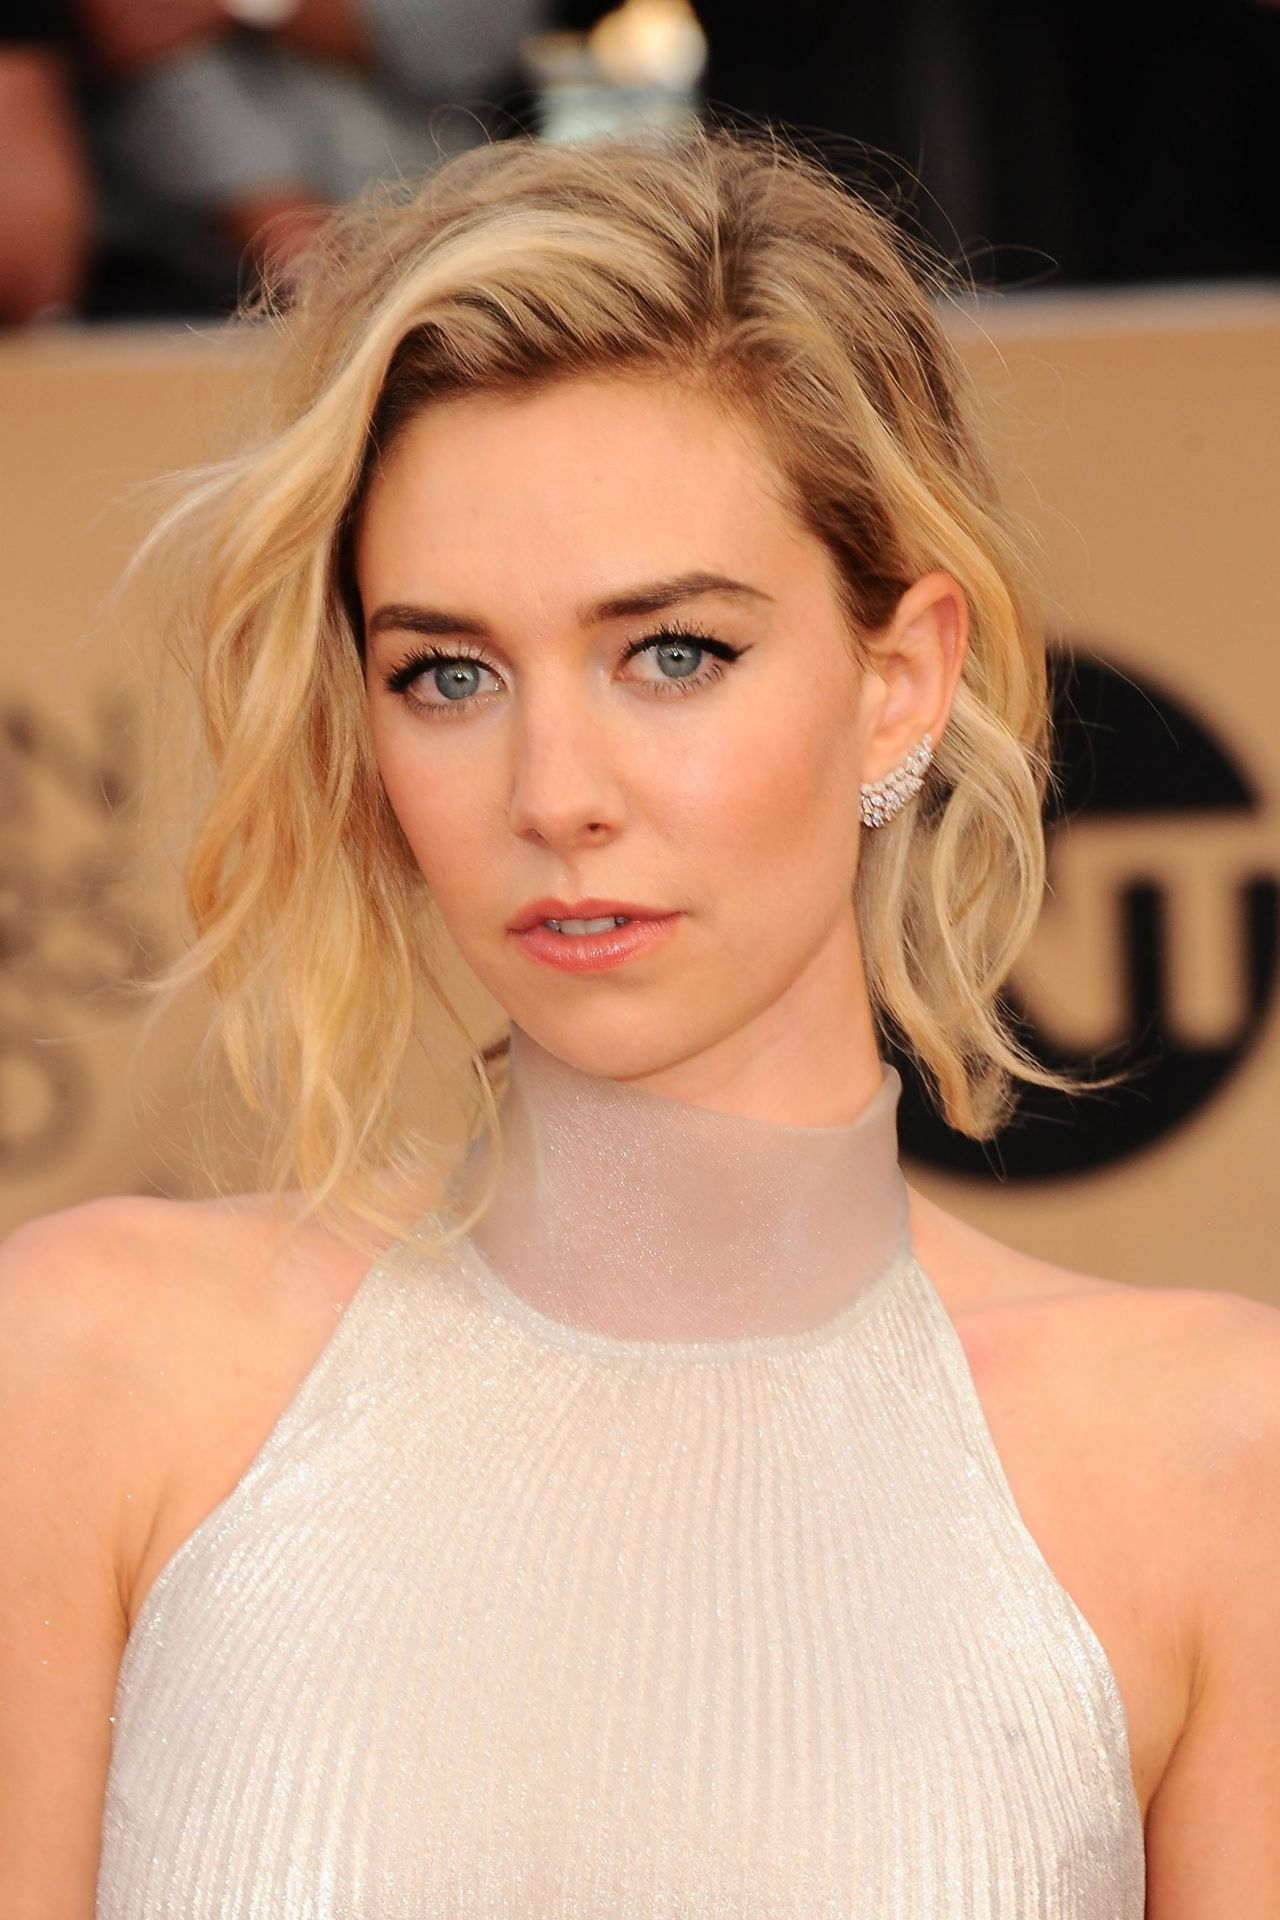 Best Hd Wallpaper For Android Mobile Vanessa Kirby Wallpapers High Quality Download Free